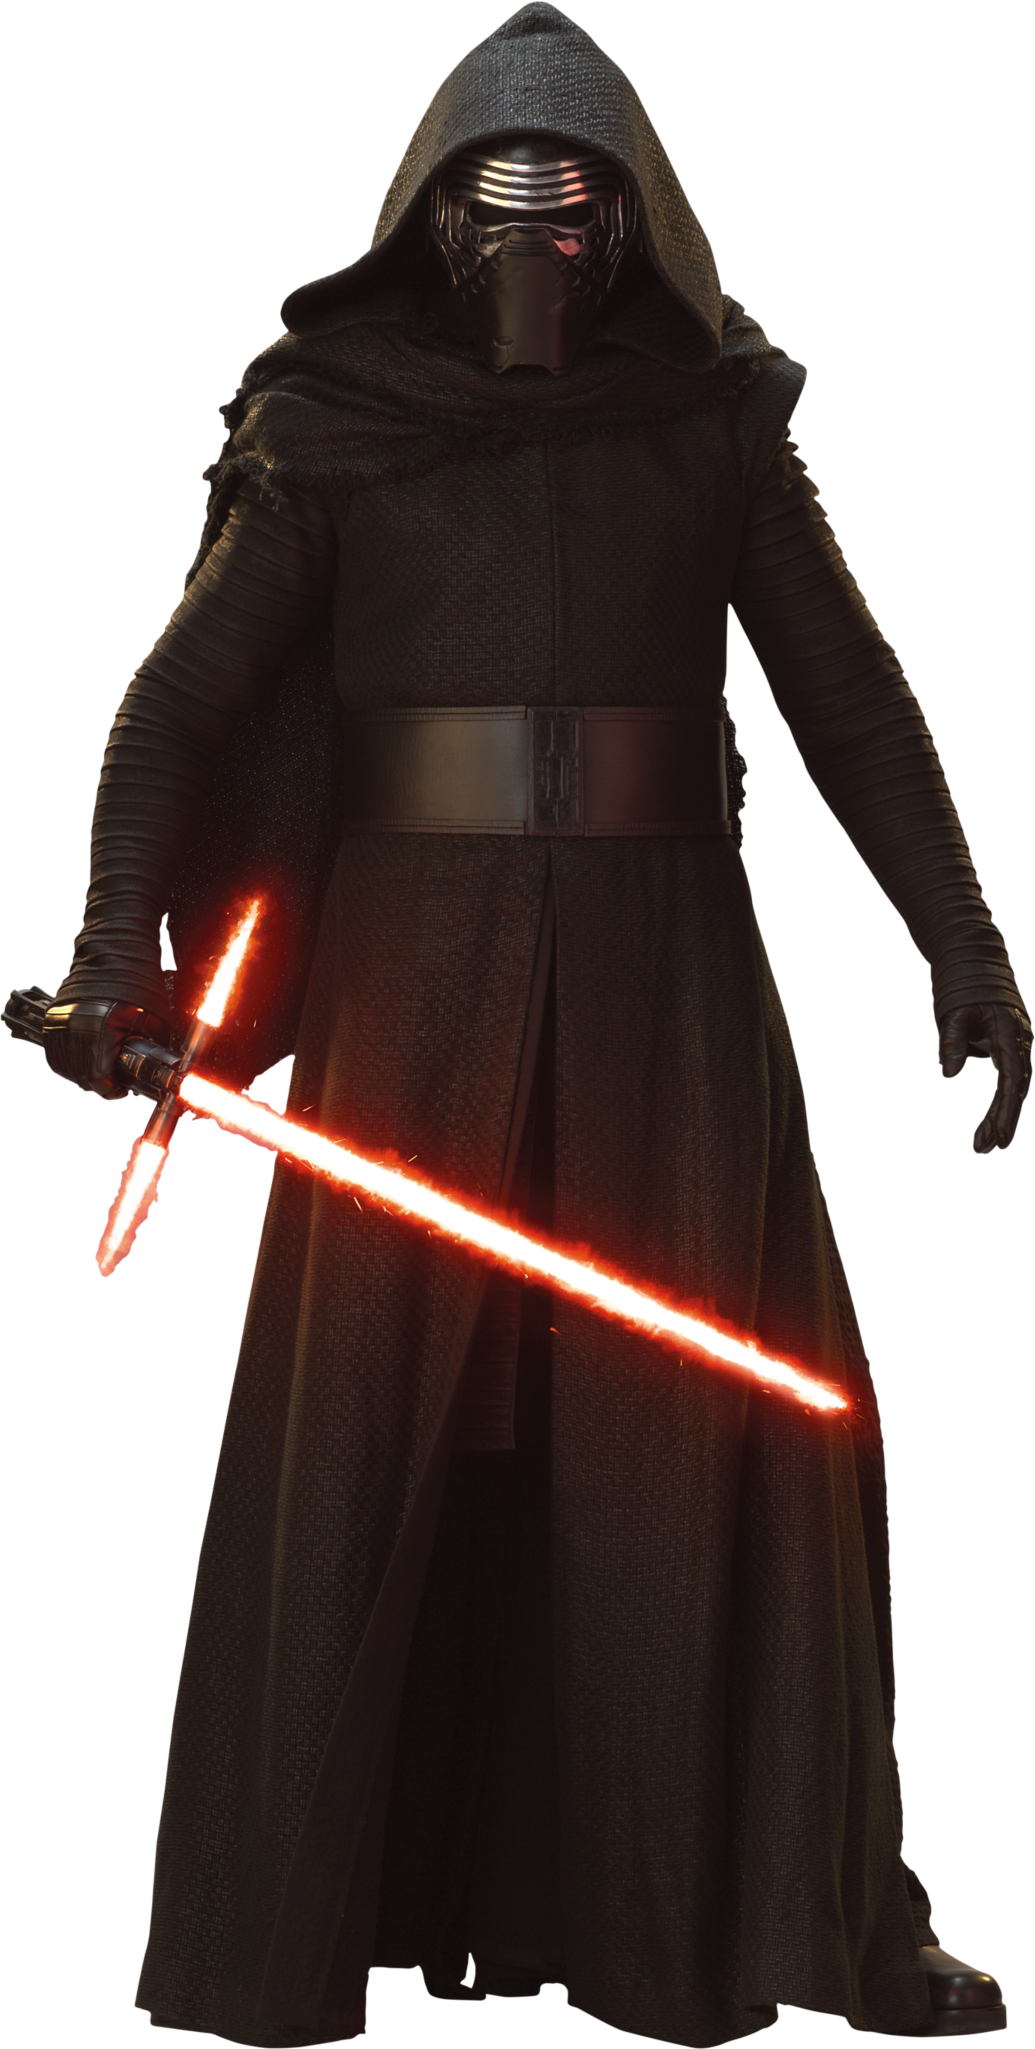 Star wars characters png. Kylo knights of the